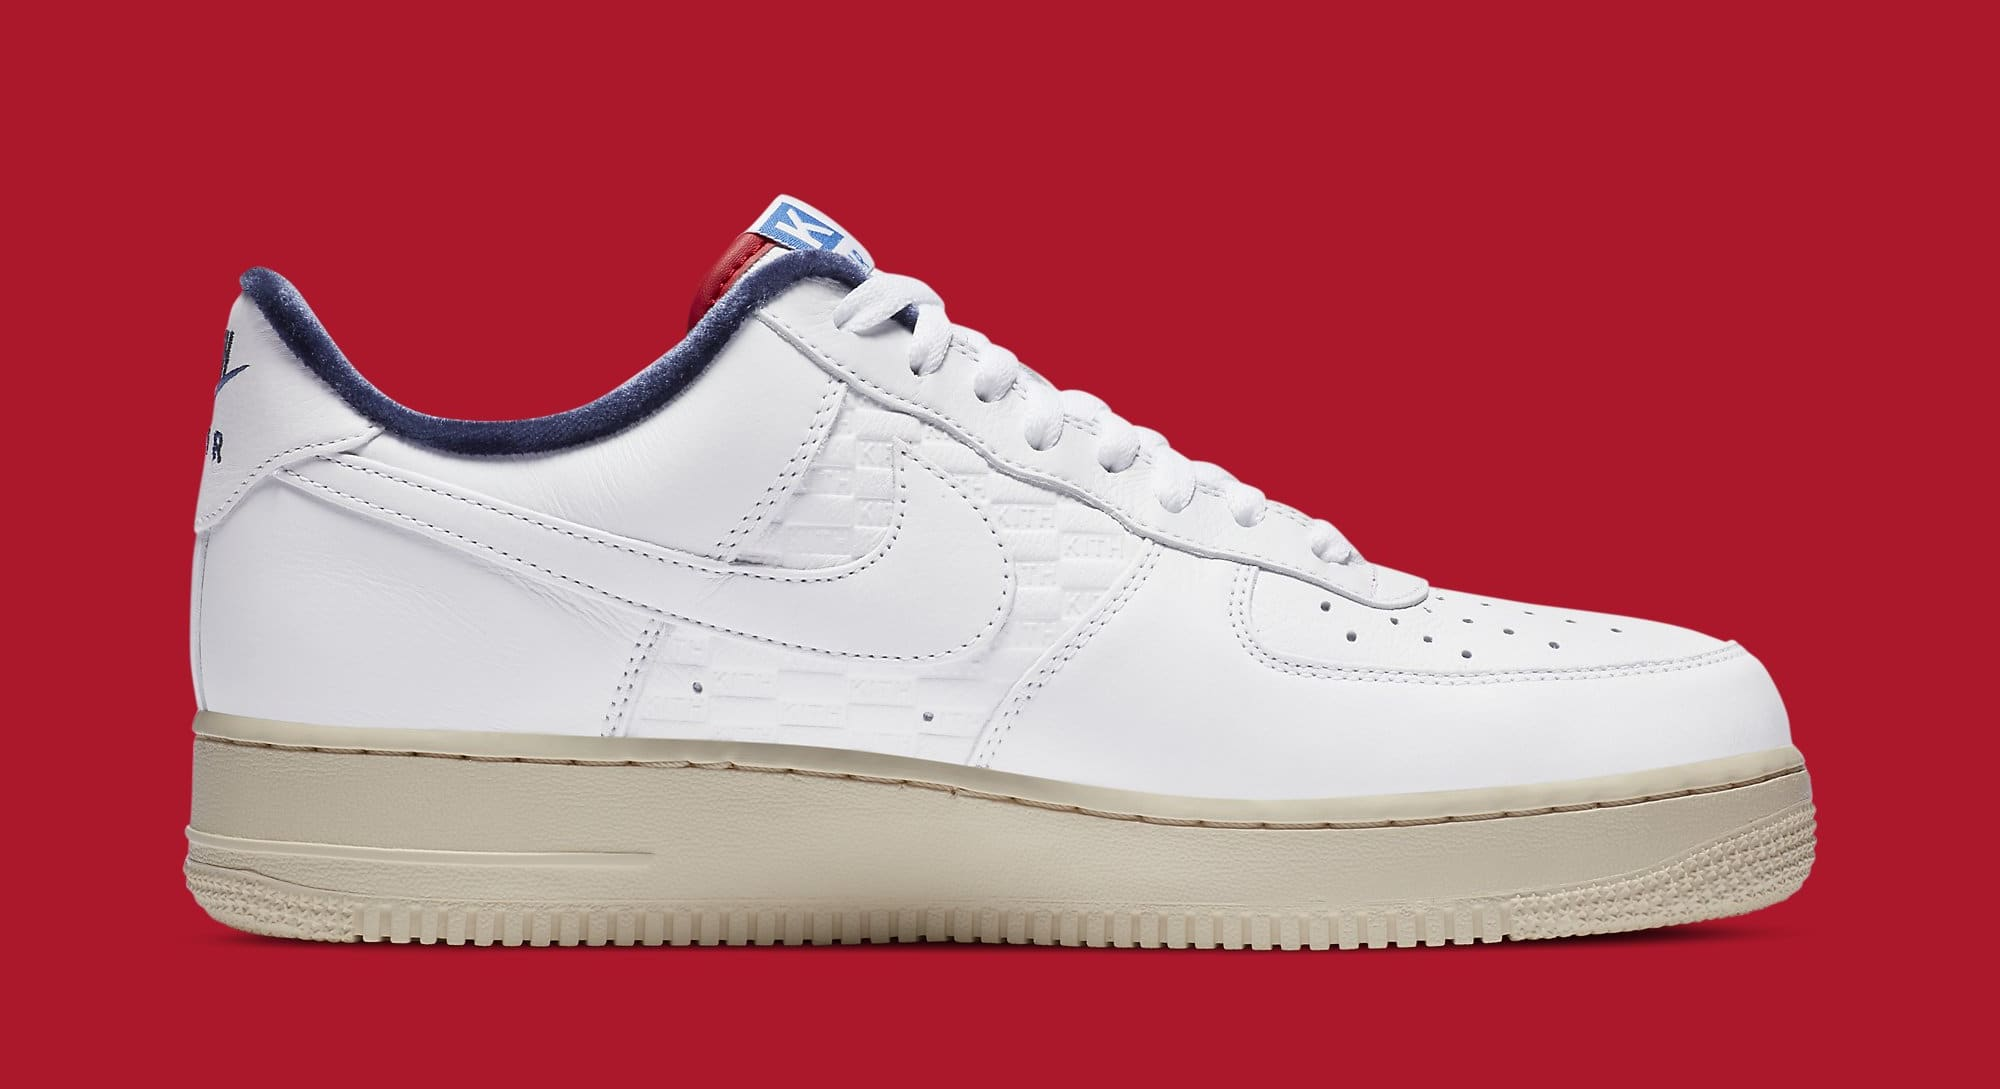 Kith x Nike Air Force 1 Low CZ7927-100 Medial